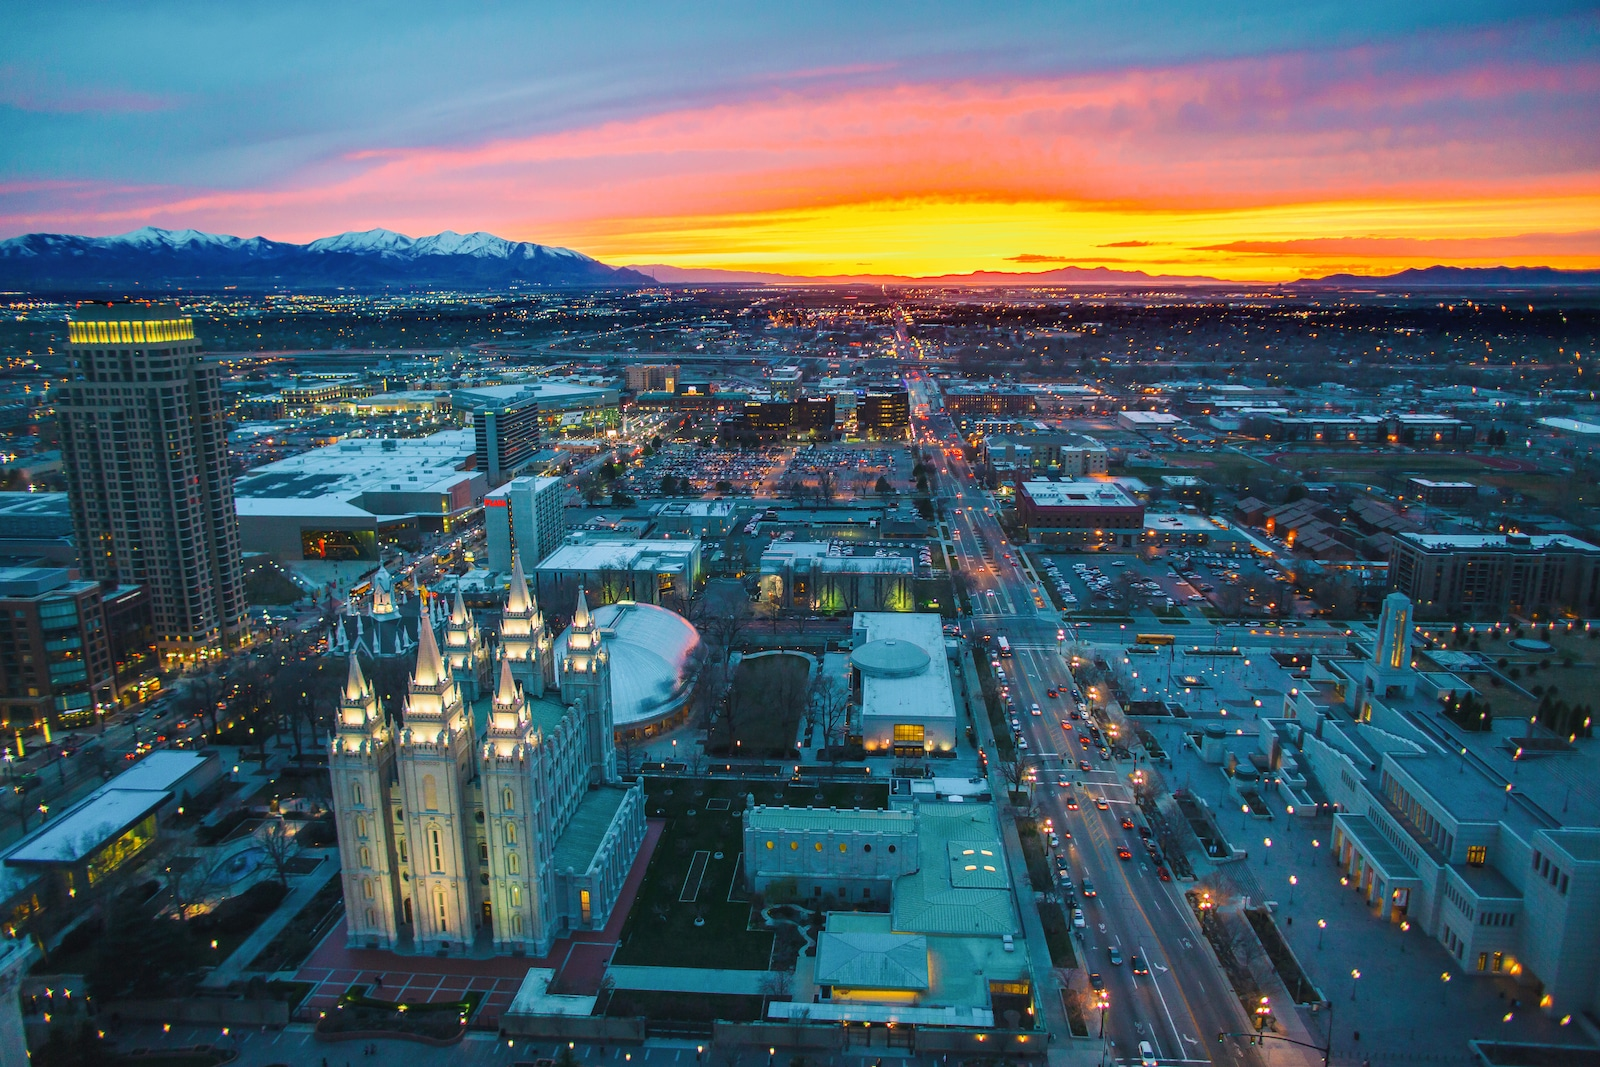 Date Night Sunset Overlooking Salt Lake City Utah